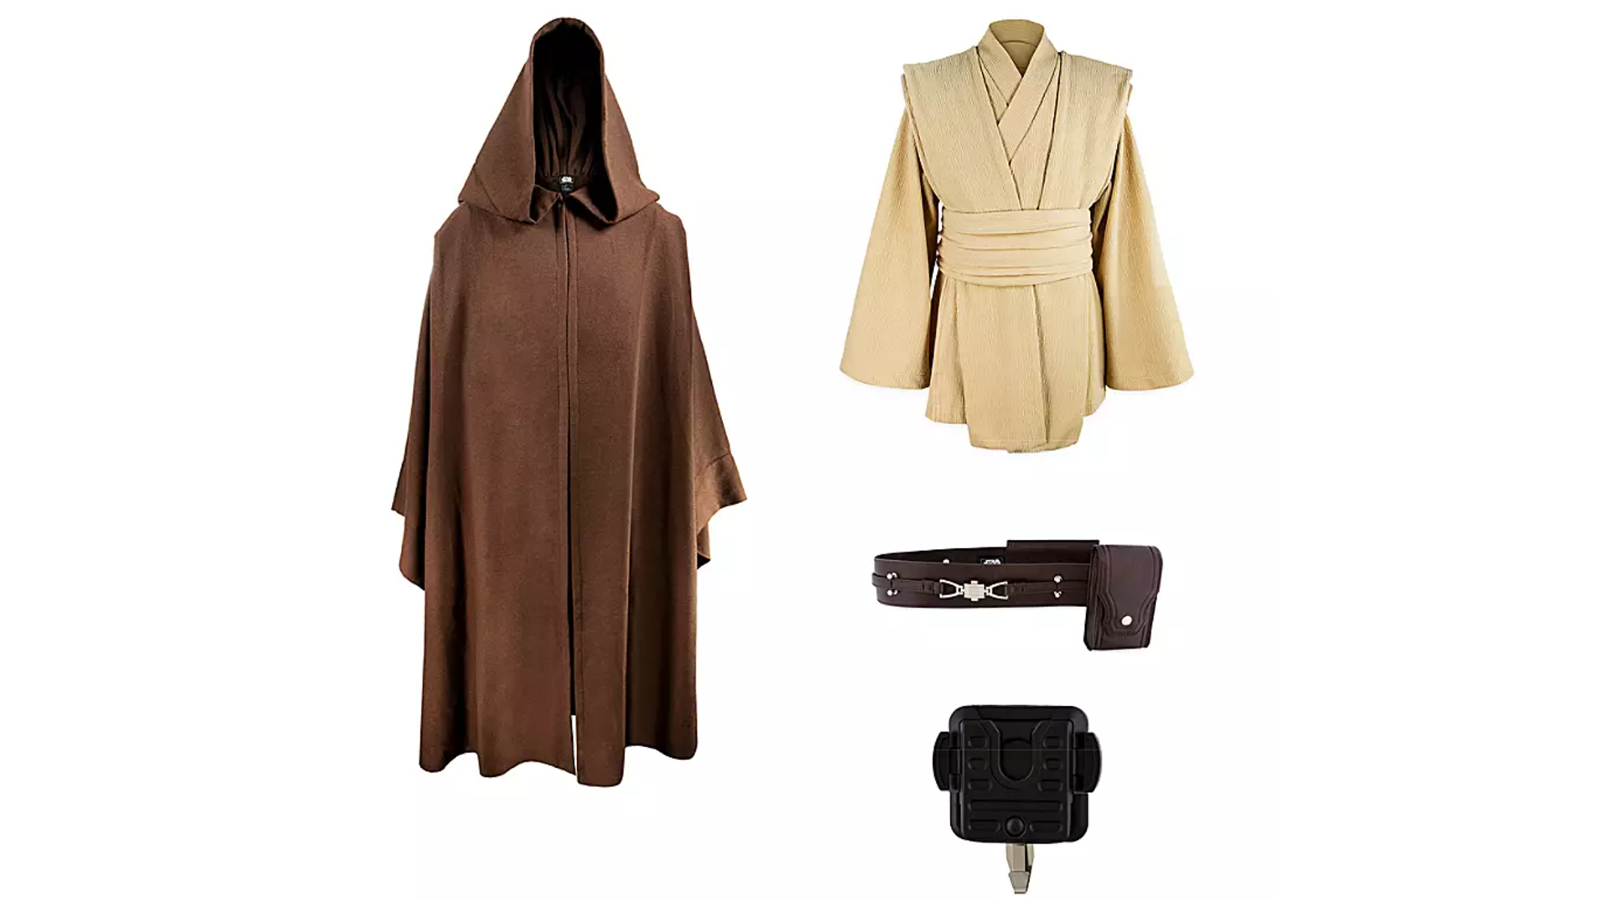 adults' star wars galaxy's edge light side collection